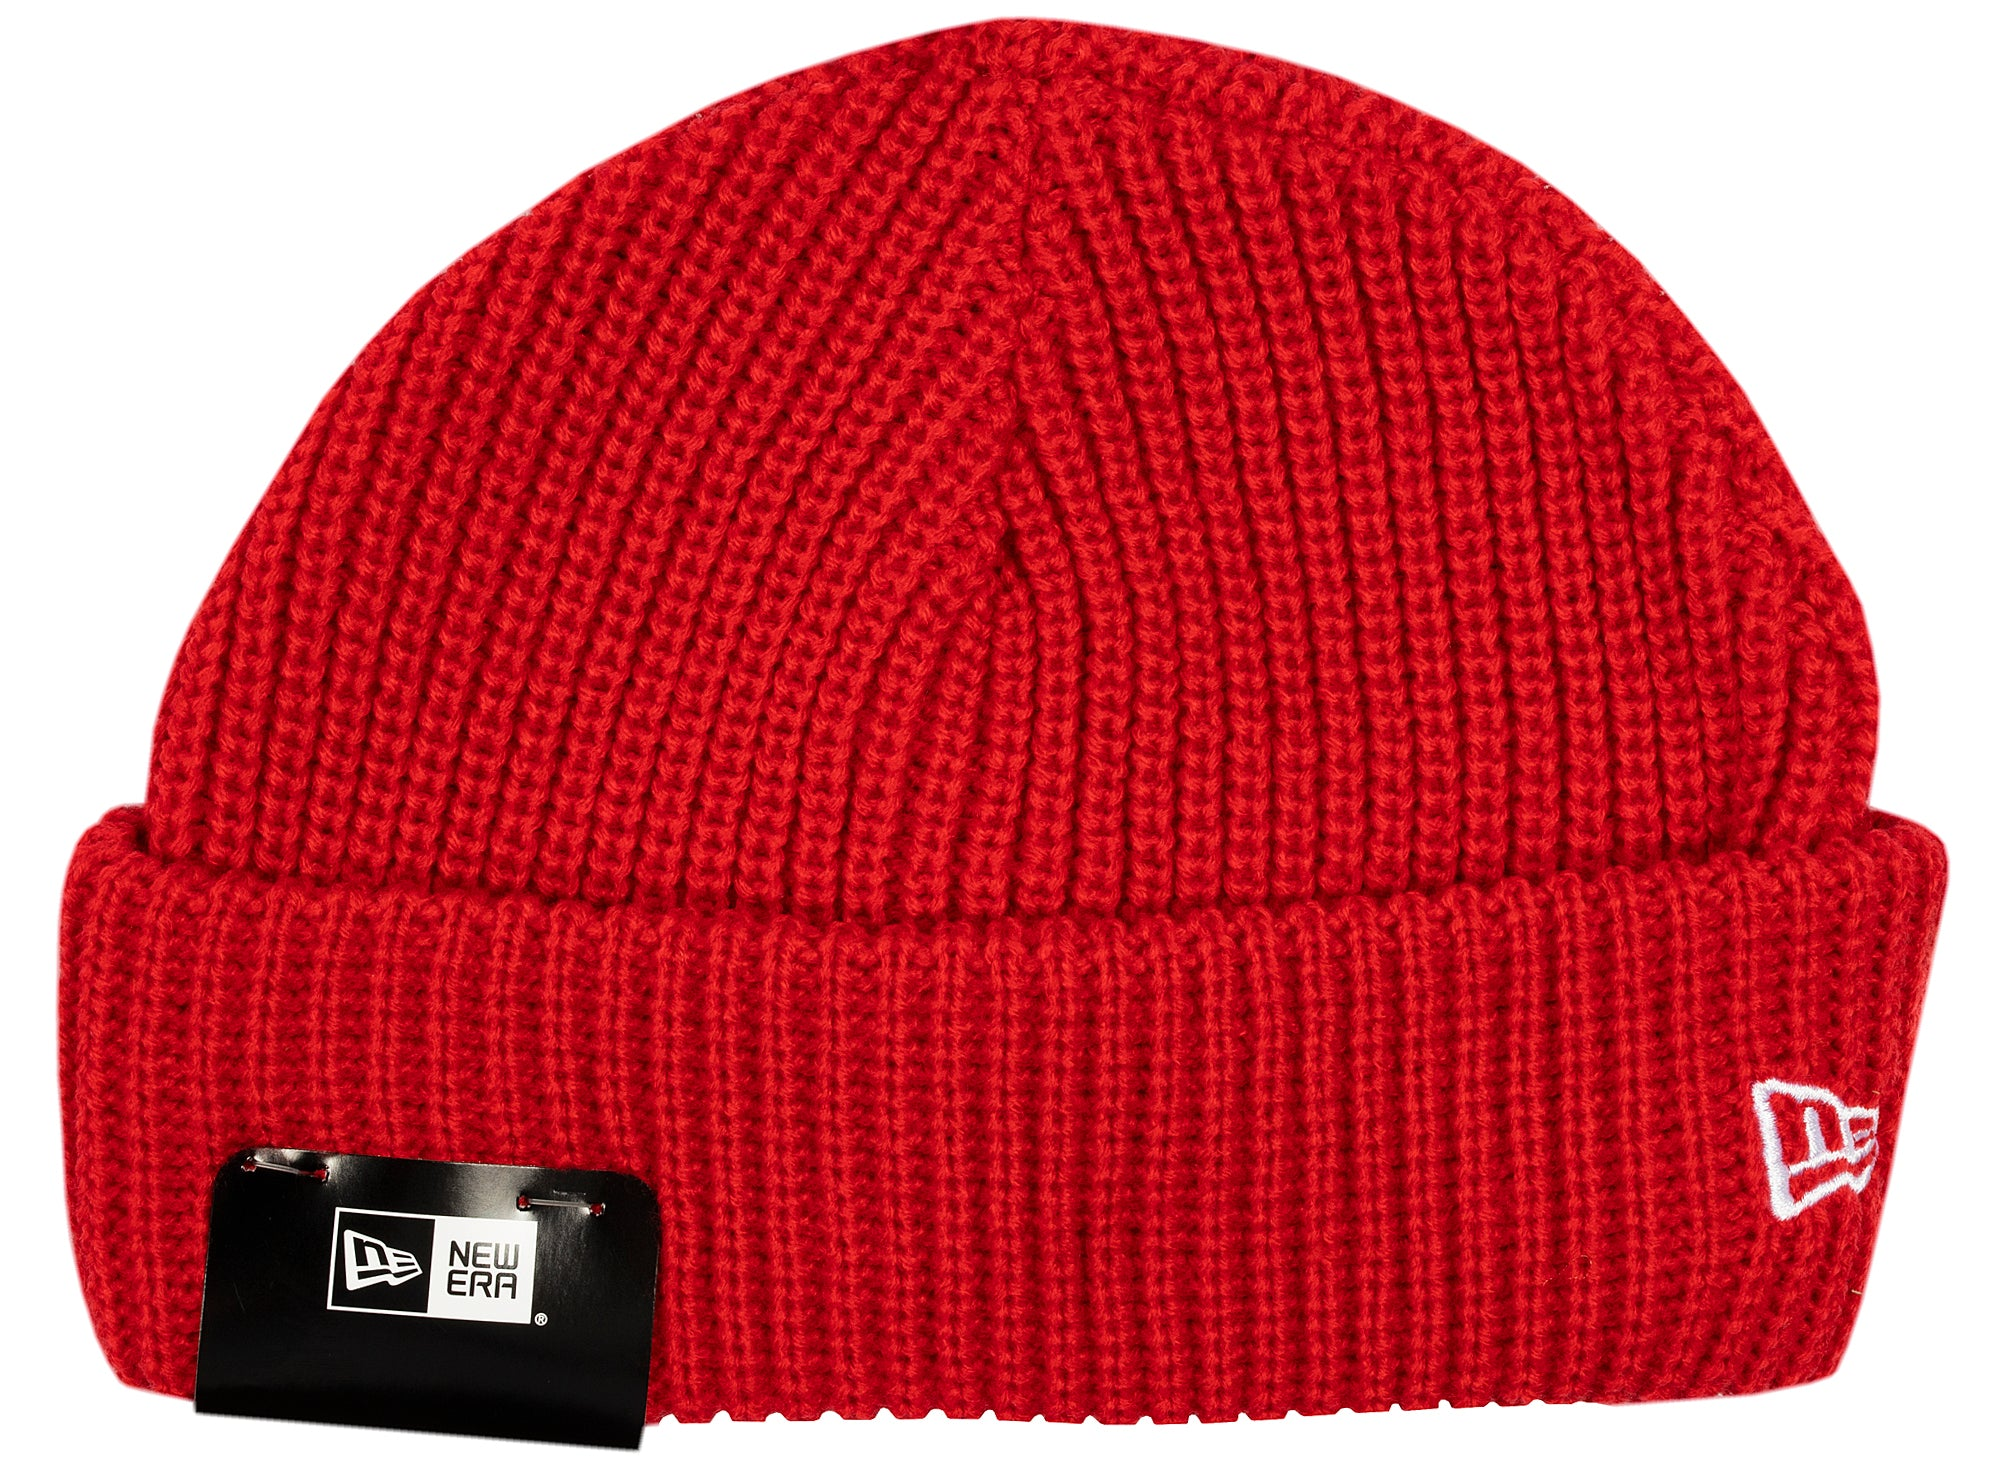 New Era Knit Skully Cap in Red xld